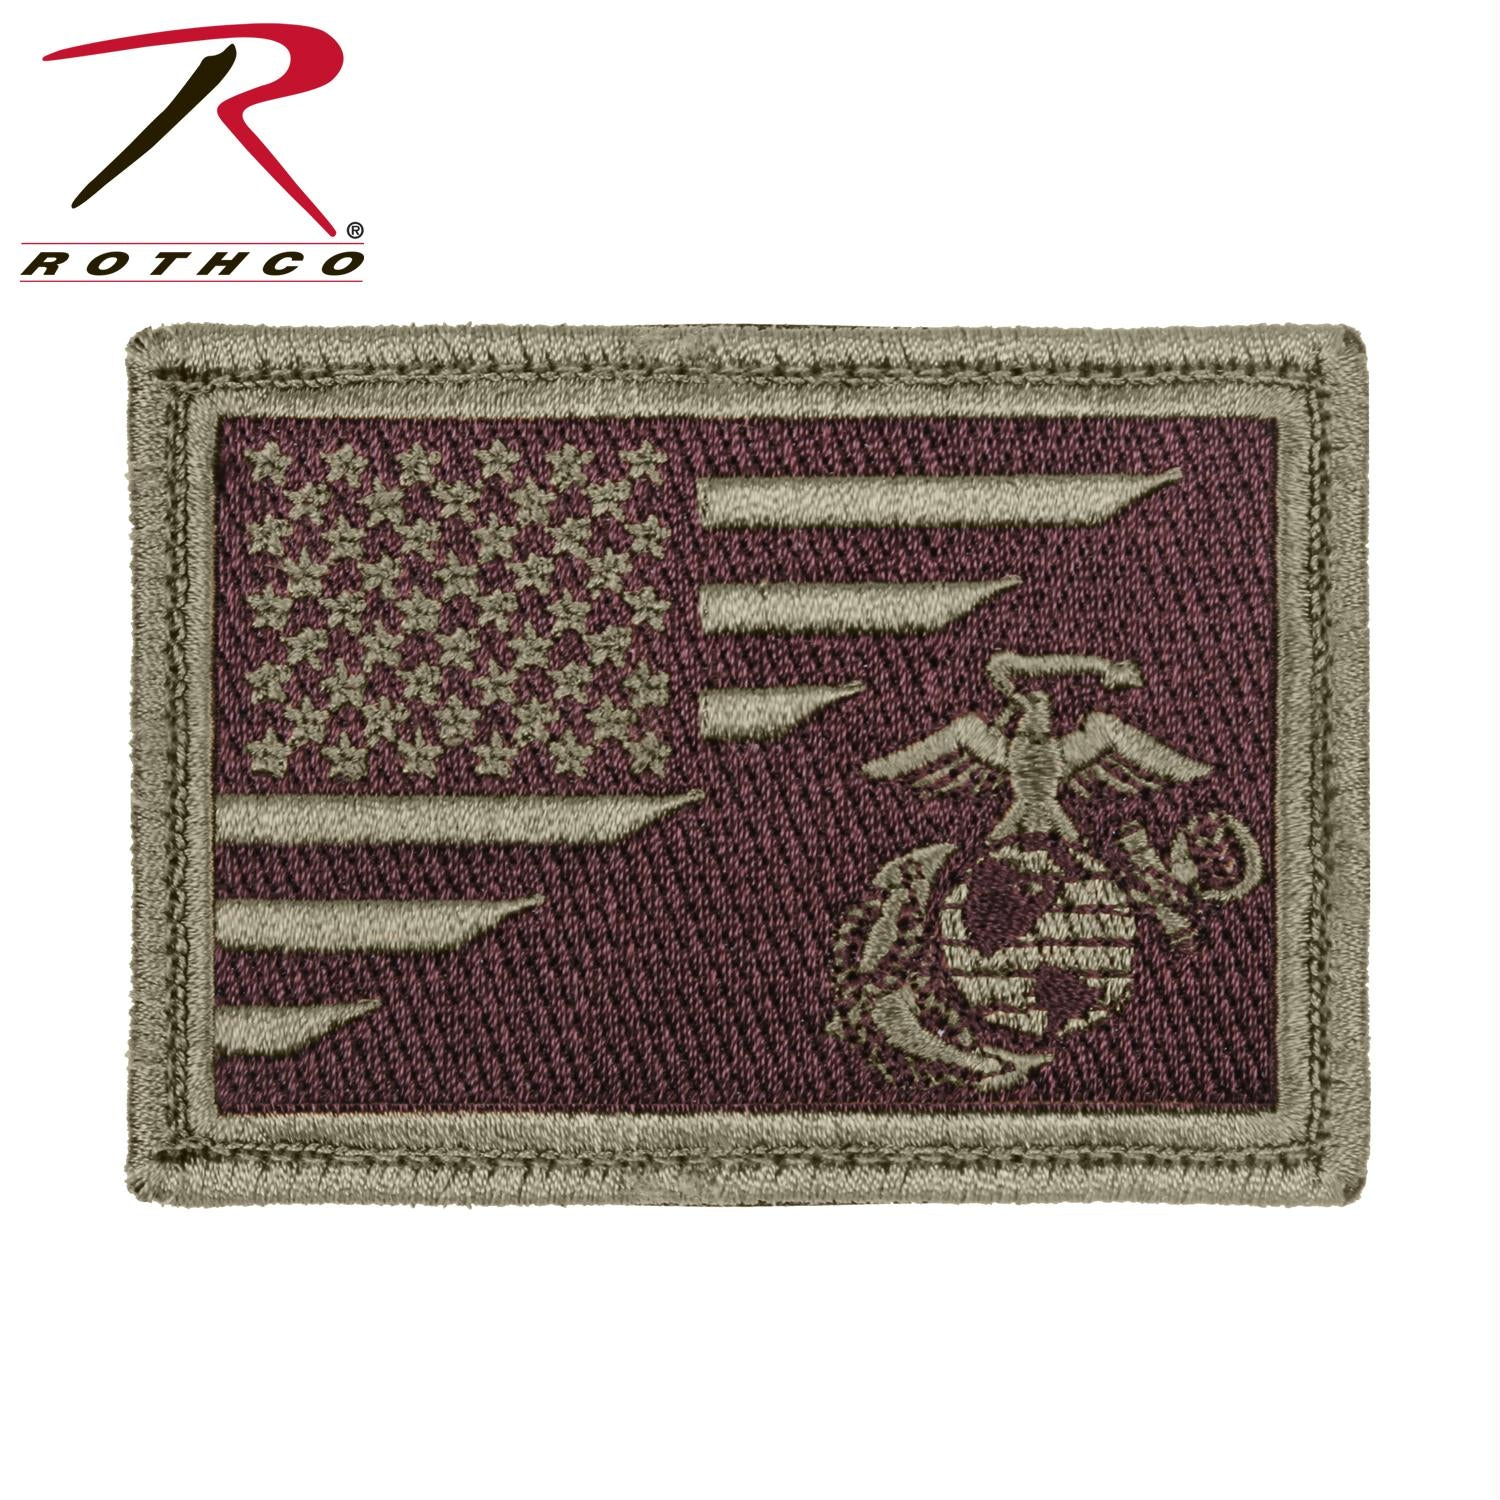 Rothco US Flag / USMC Globe and Anchor Morale Patch